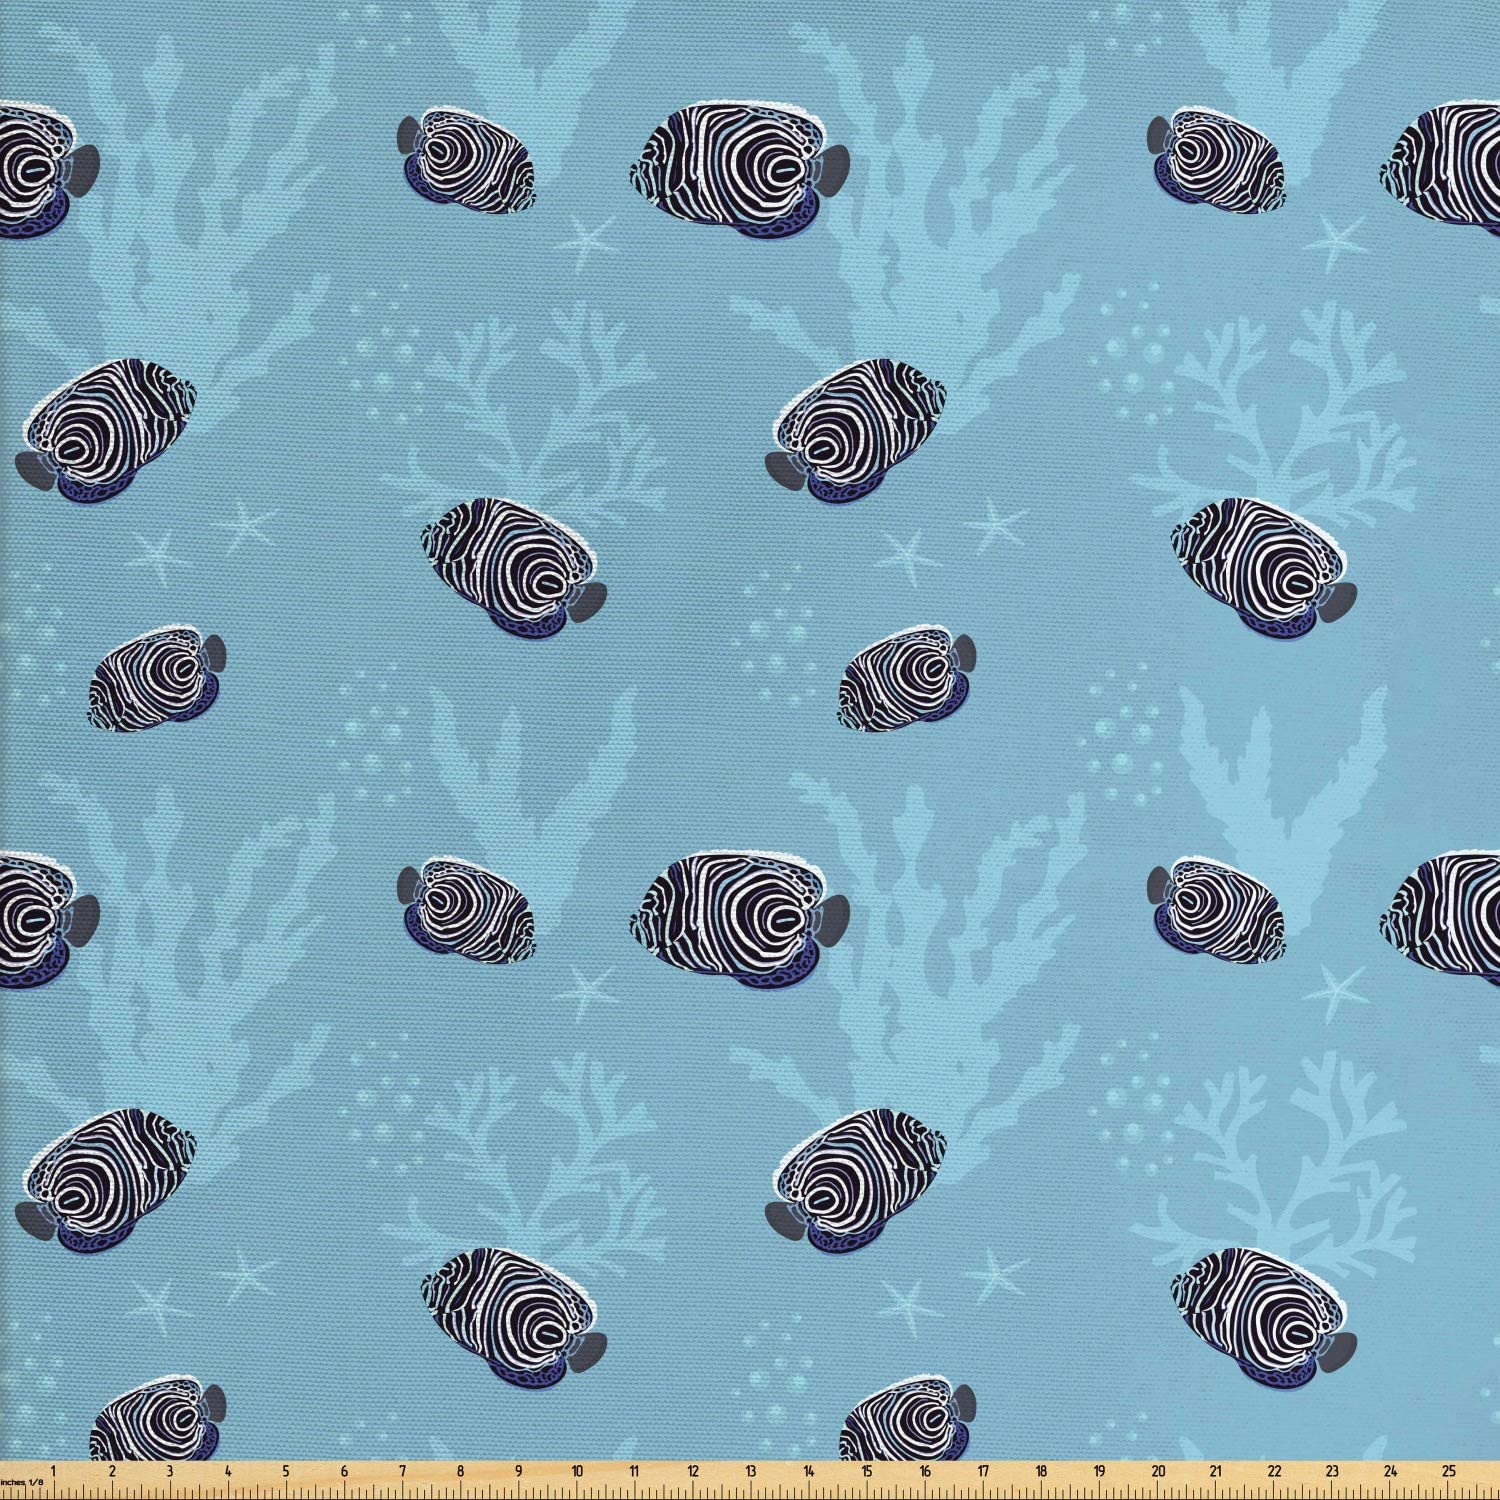 Ambesonne Nautical Fabric by The Yard, Marine Theme Exotic Fish Patterns with Starfishes and Seaweeds, Decorative Fabric for Upholstery and Home Accents, 1 Yard, Pale Teal Pale Sky Blue